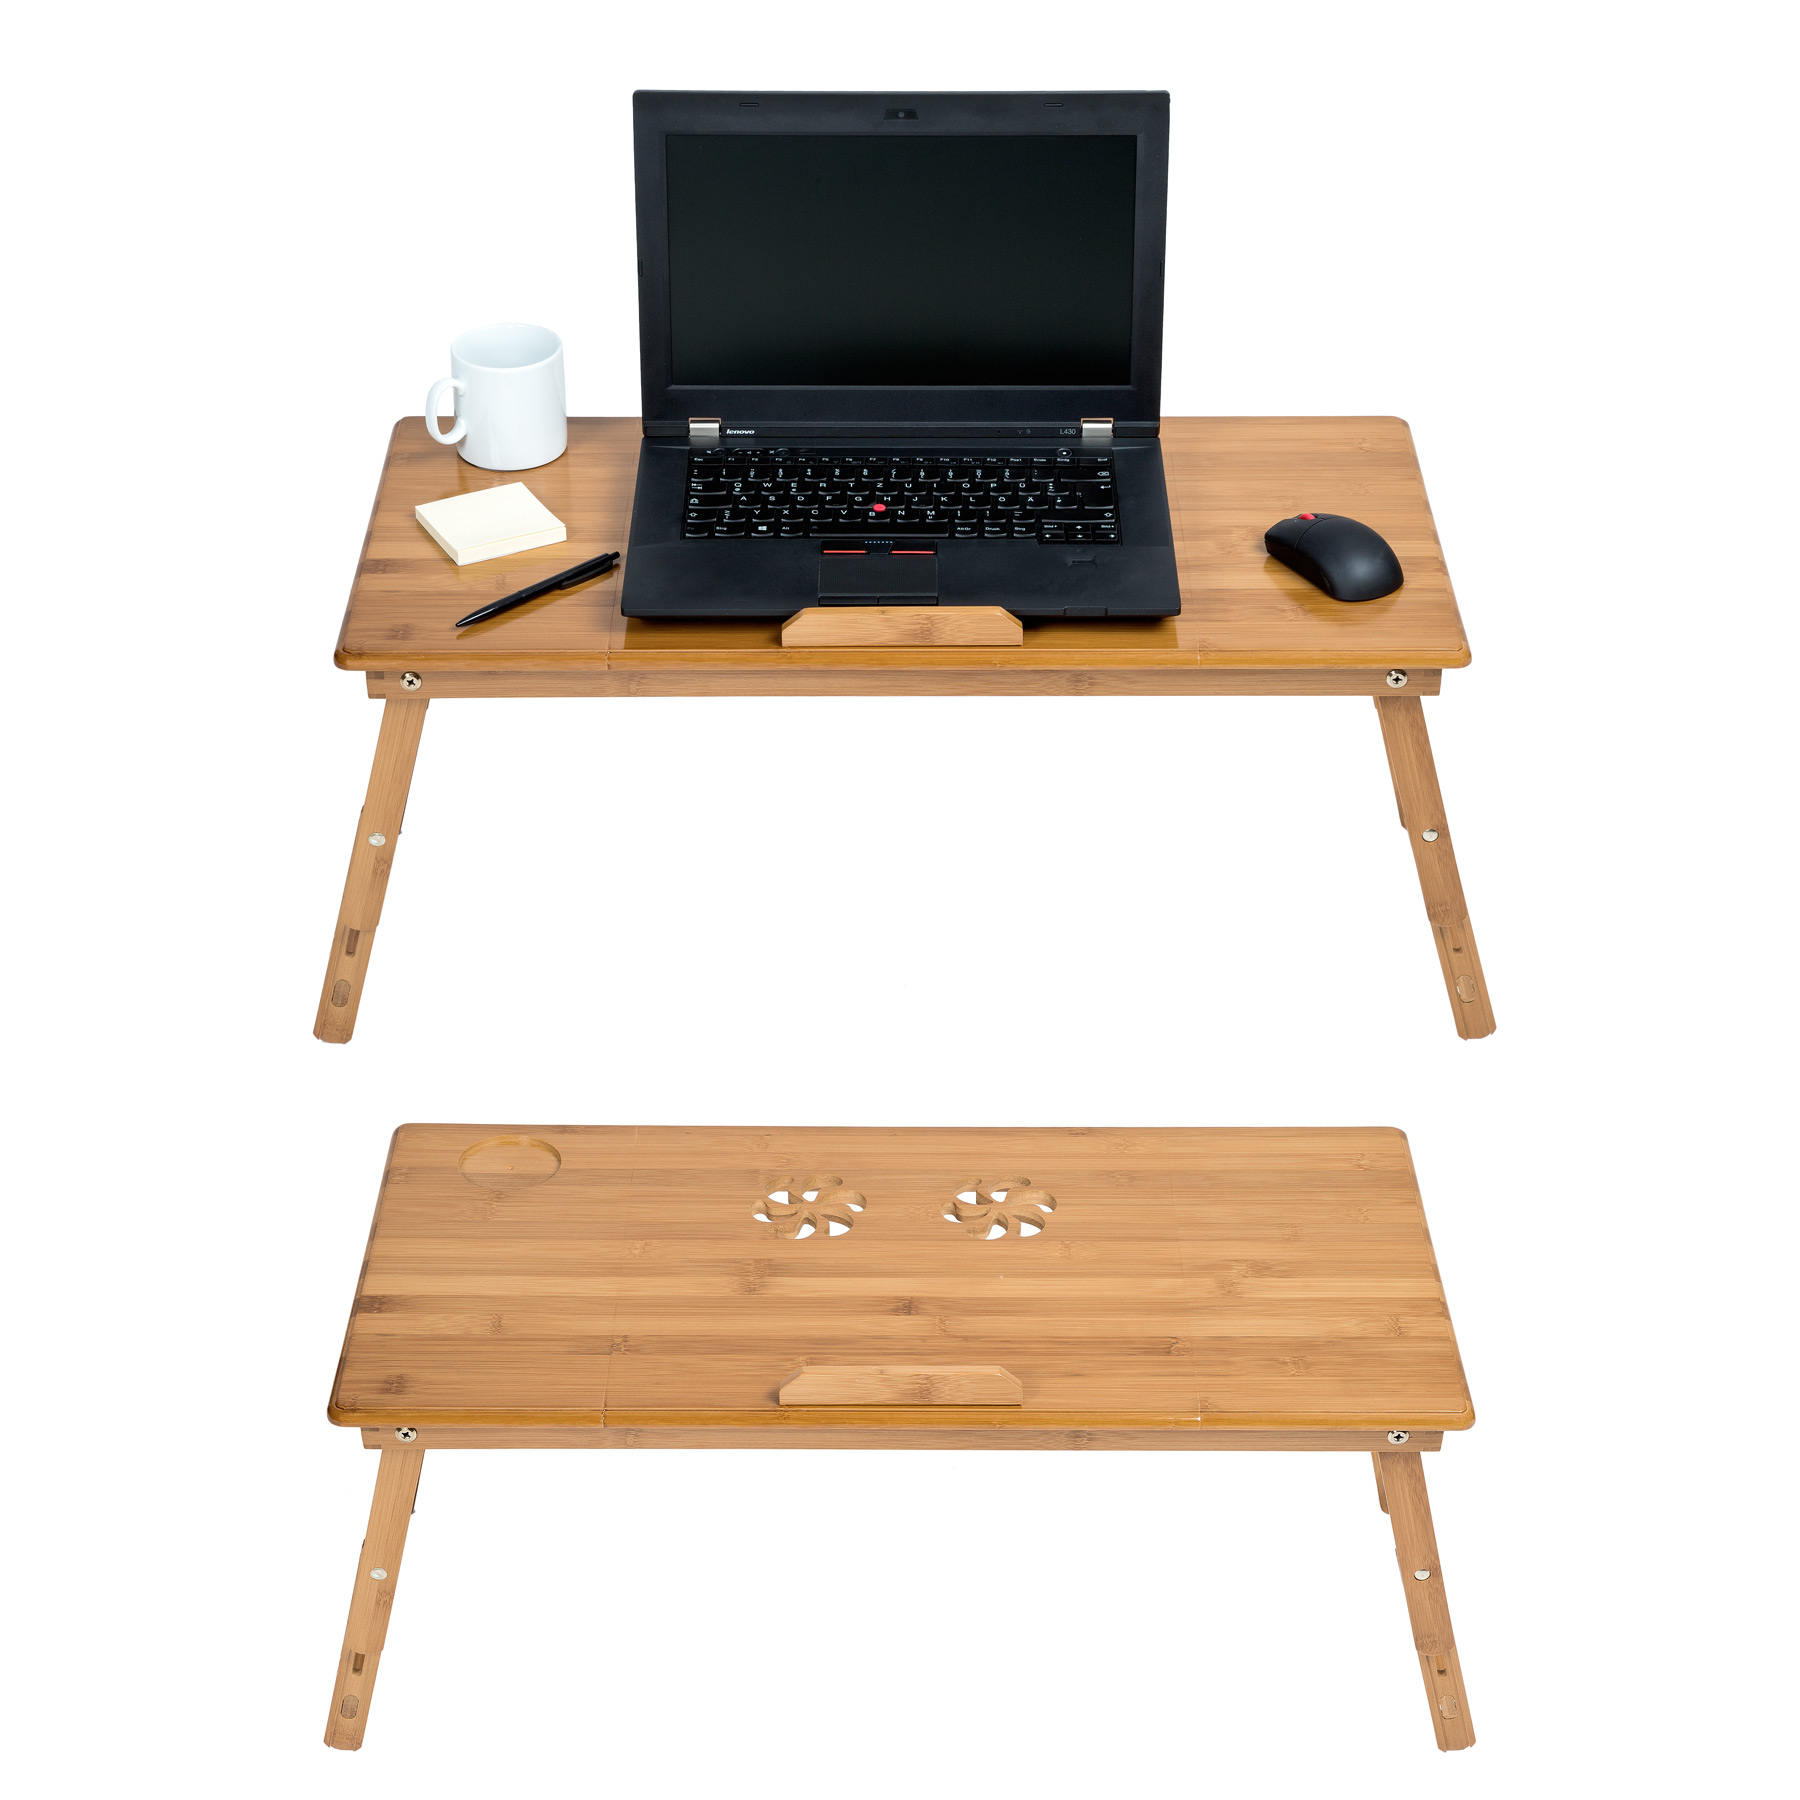 Table de lit pliable pour pc portable notebook tablet - Table de lit pour ordinateur portable ...